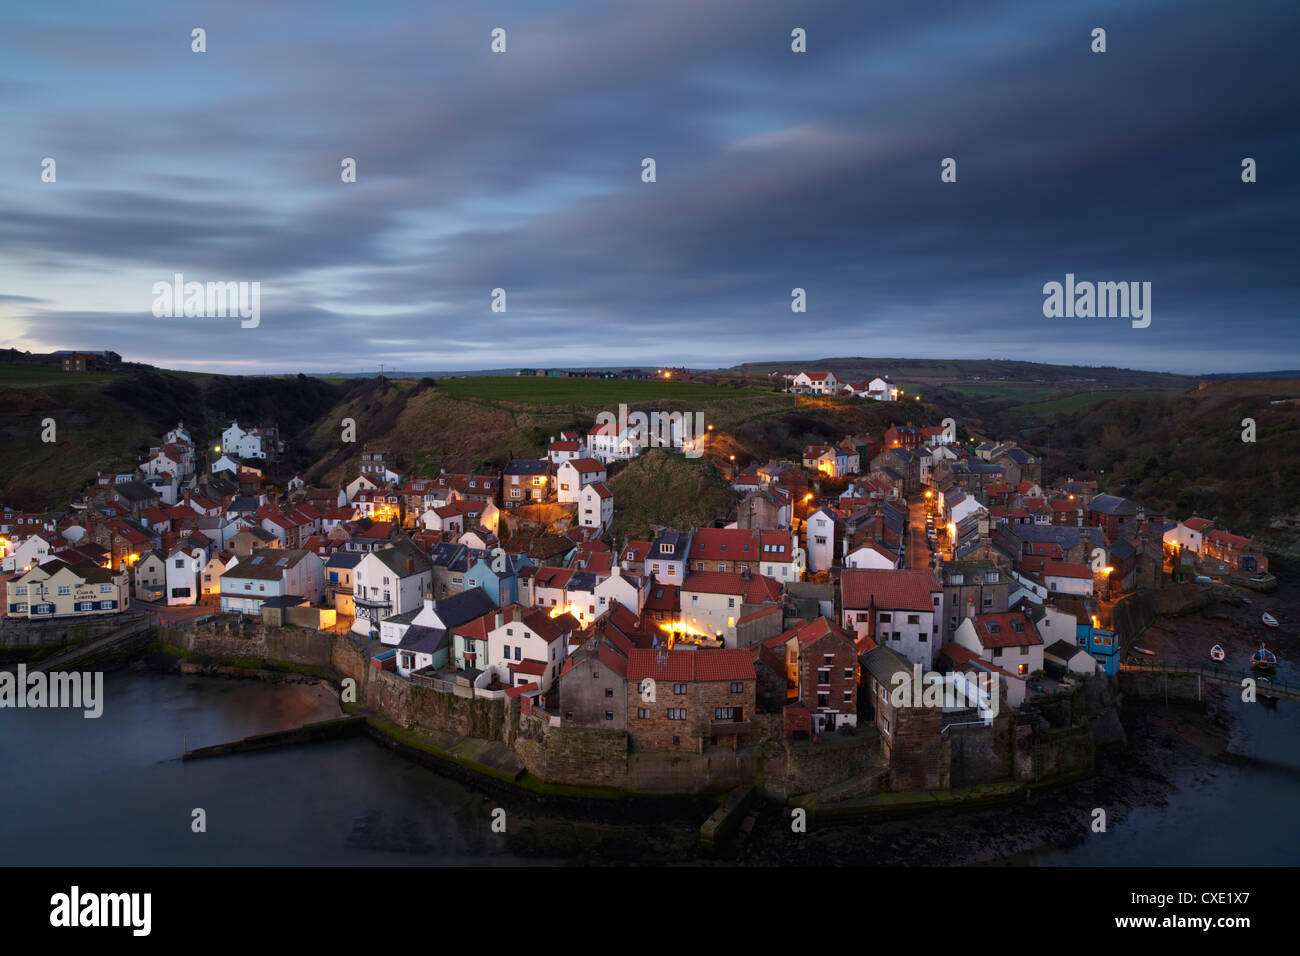 The view from Cowbar of the fishing village of Staithes, North Yorkshire, England - Stock Image